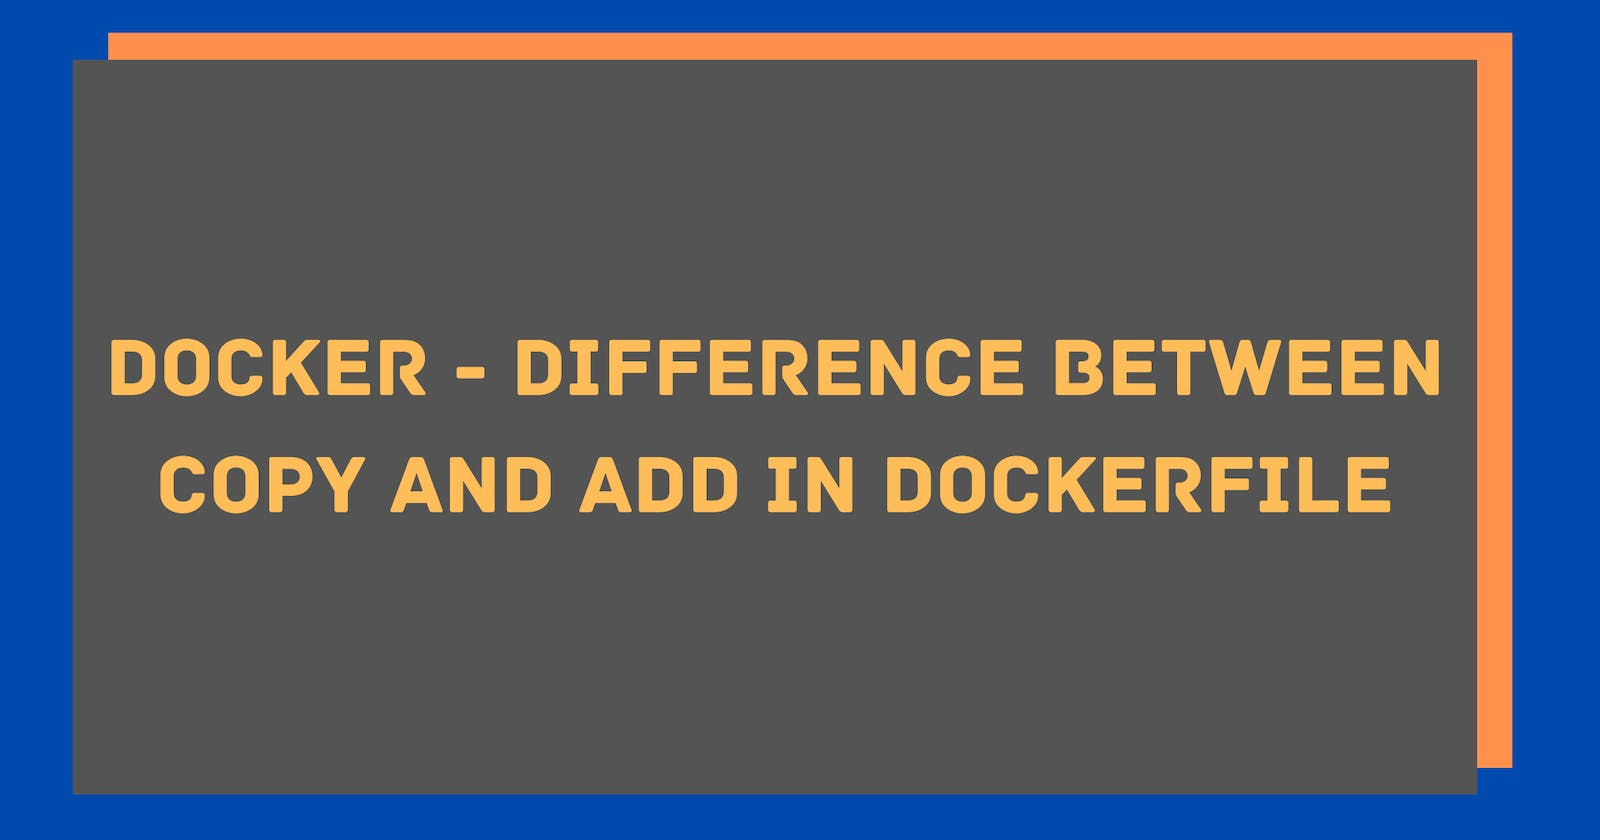 Docker - Difference between COPY and ADD in Dockerfile